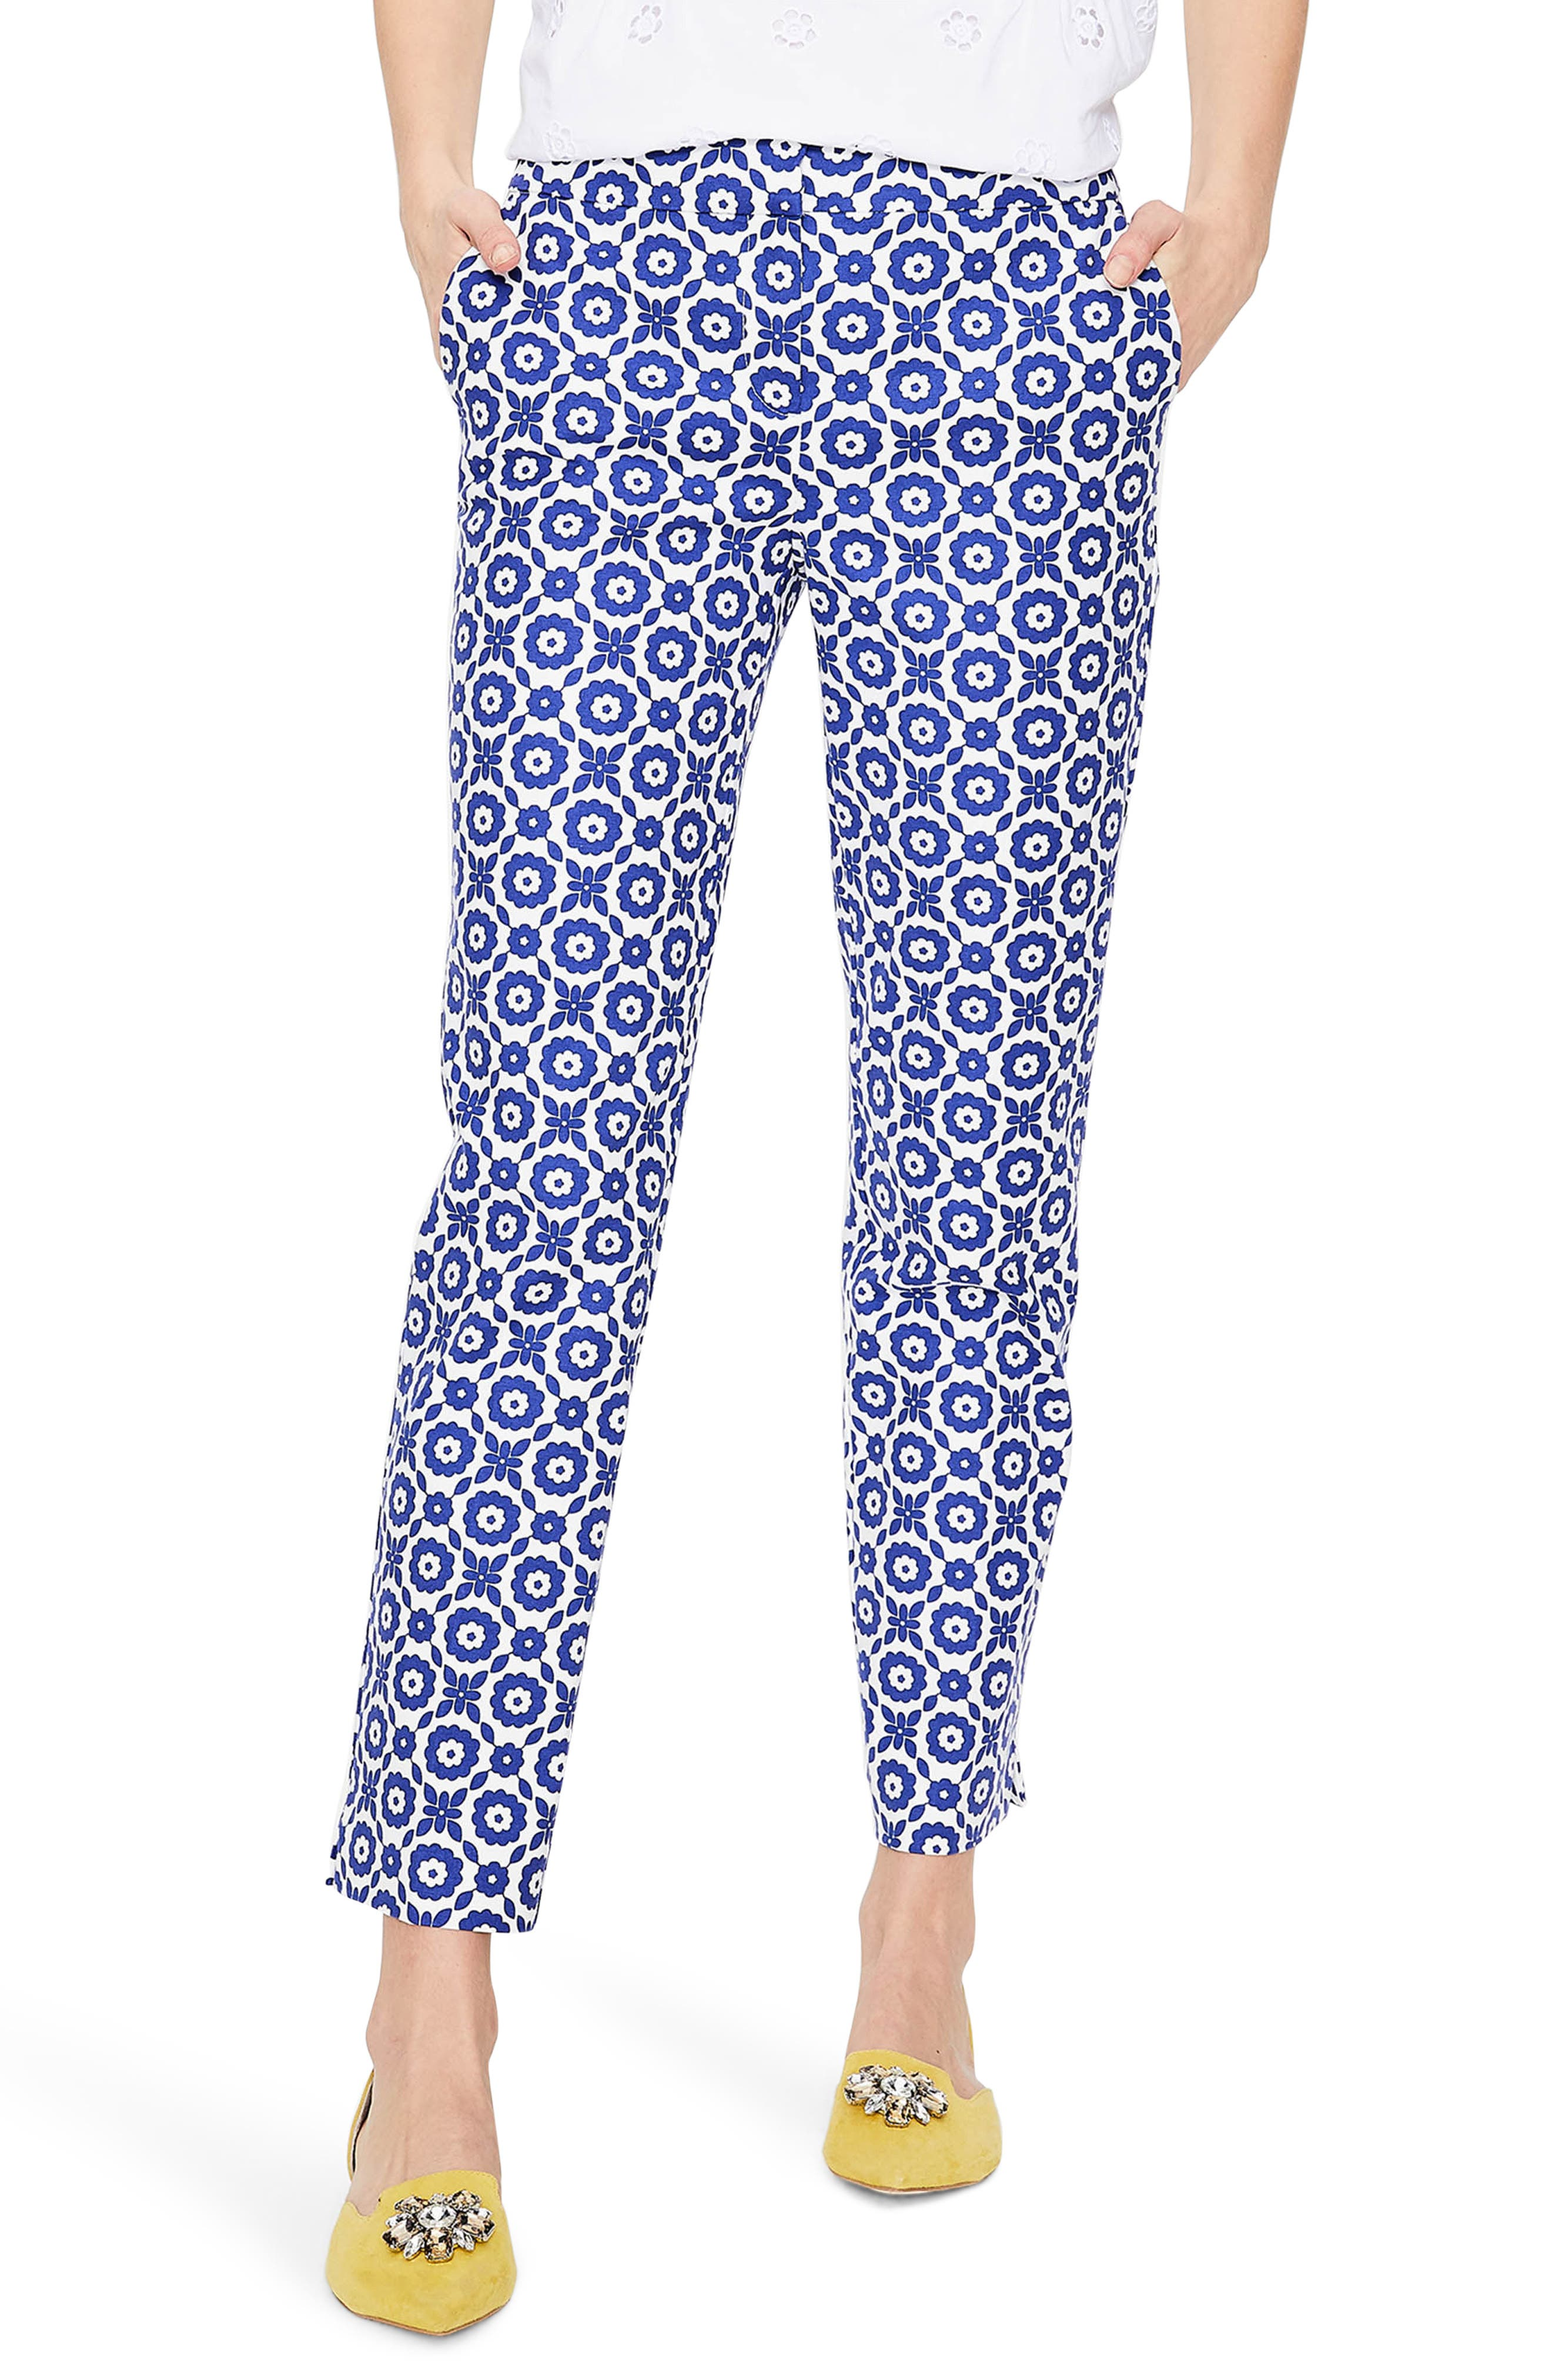 Richmond Polka Dot Stripe Contrast Ankle Pants,                             Main thumbnail 1, color,                             Greek Blue/ Daisy Chain